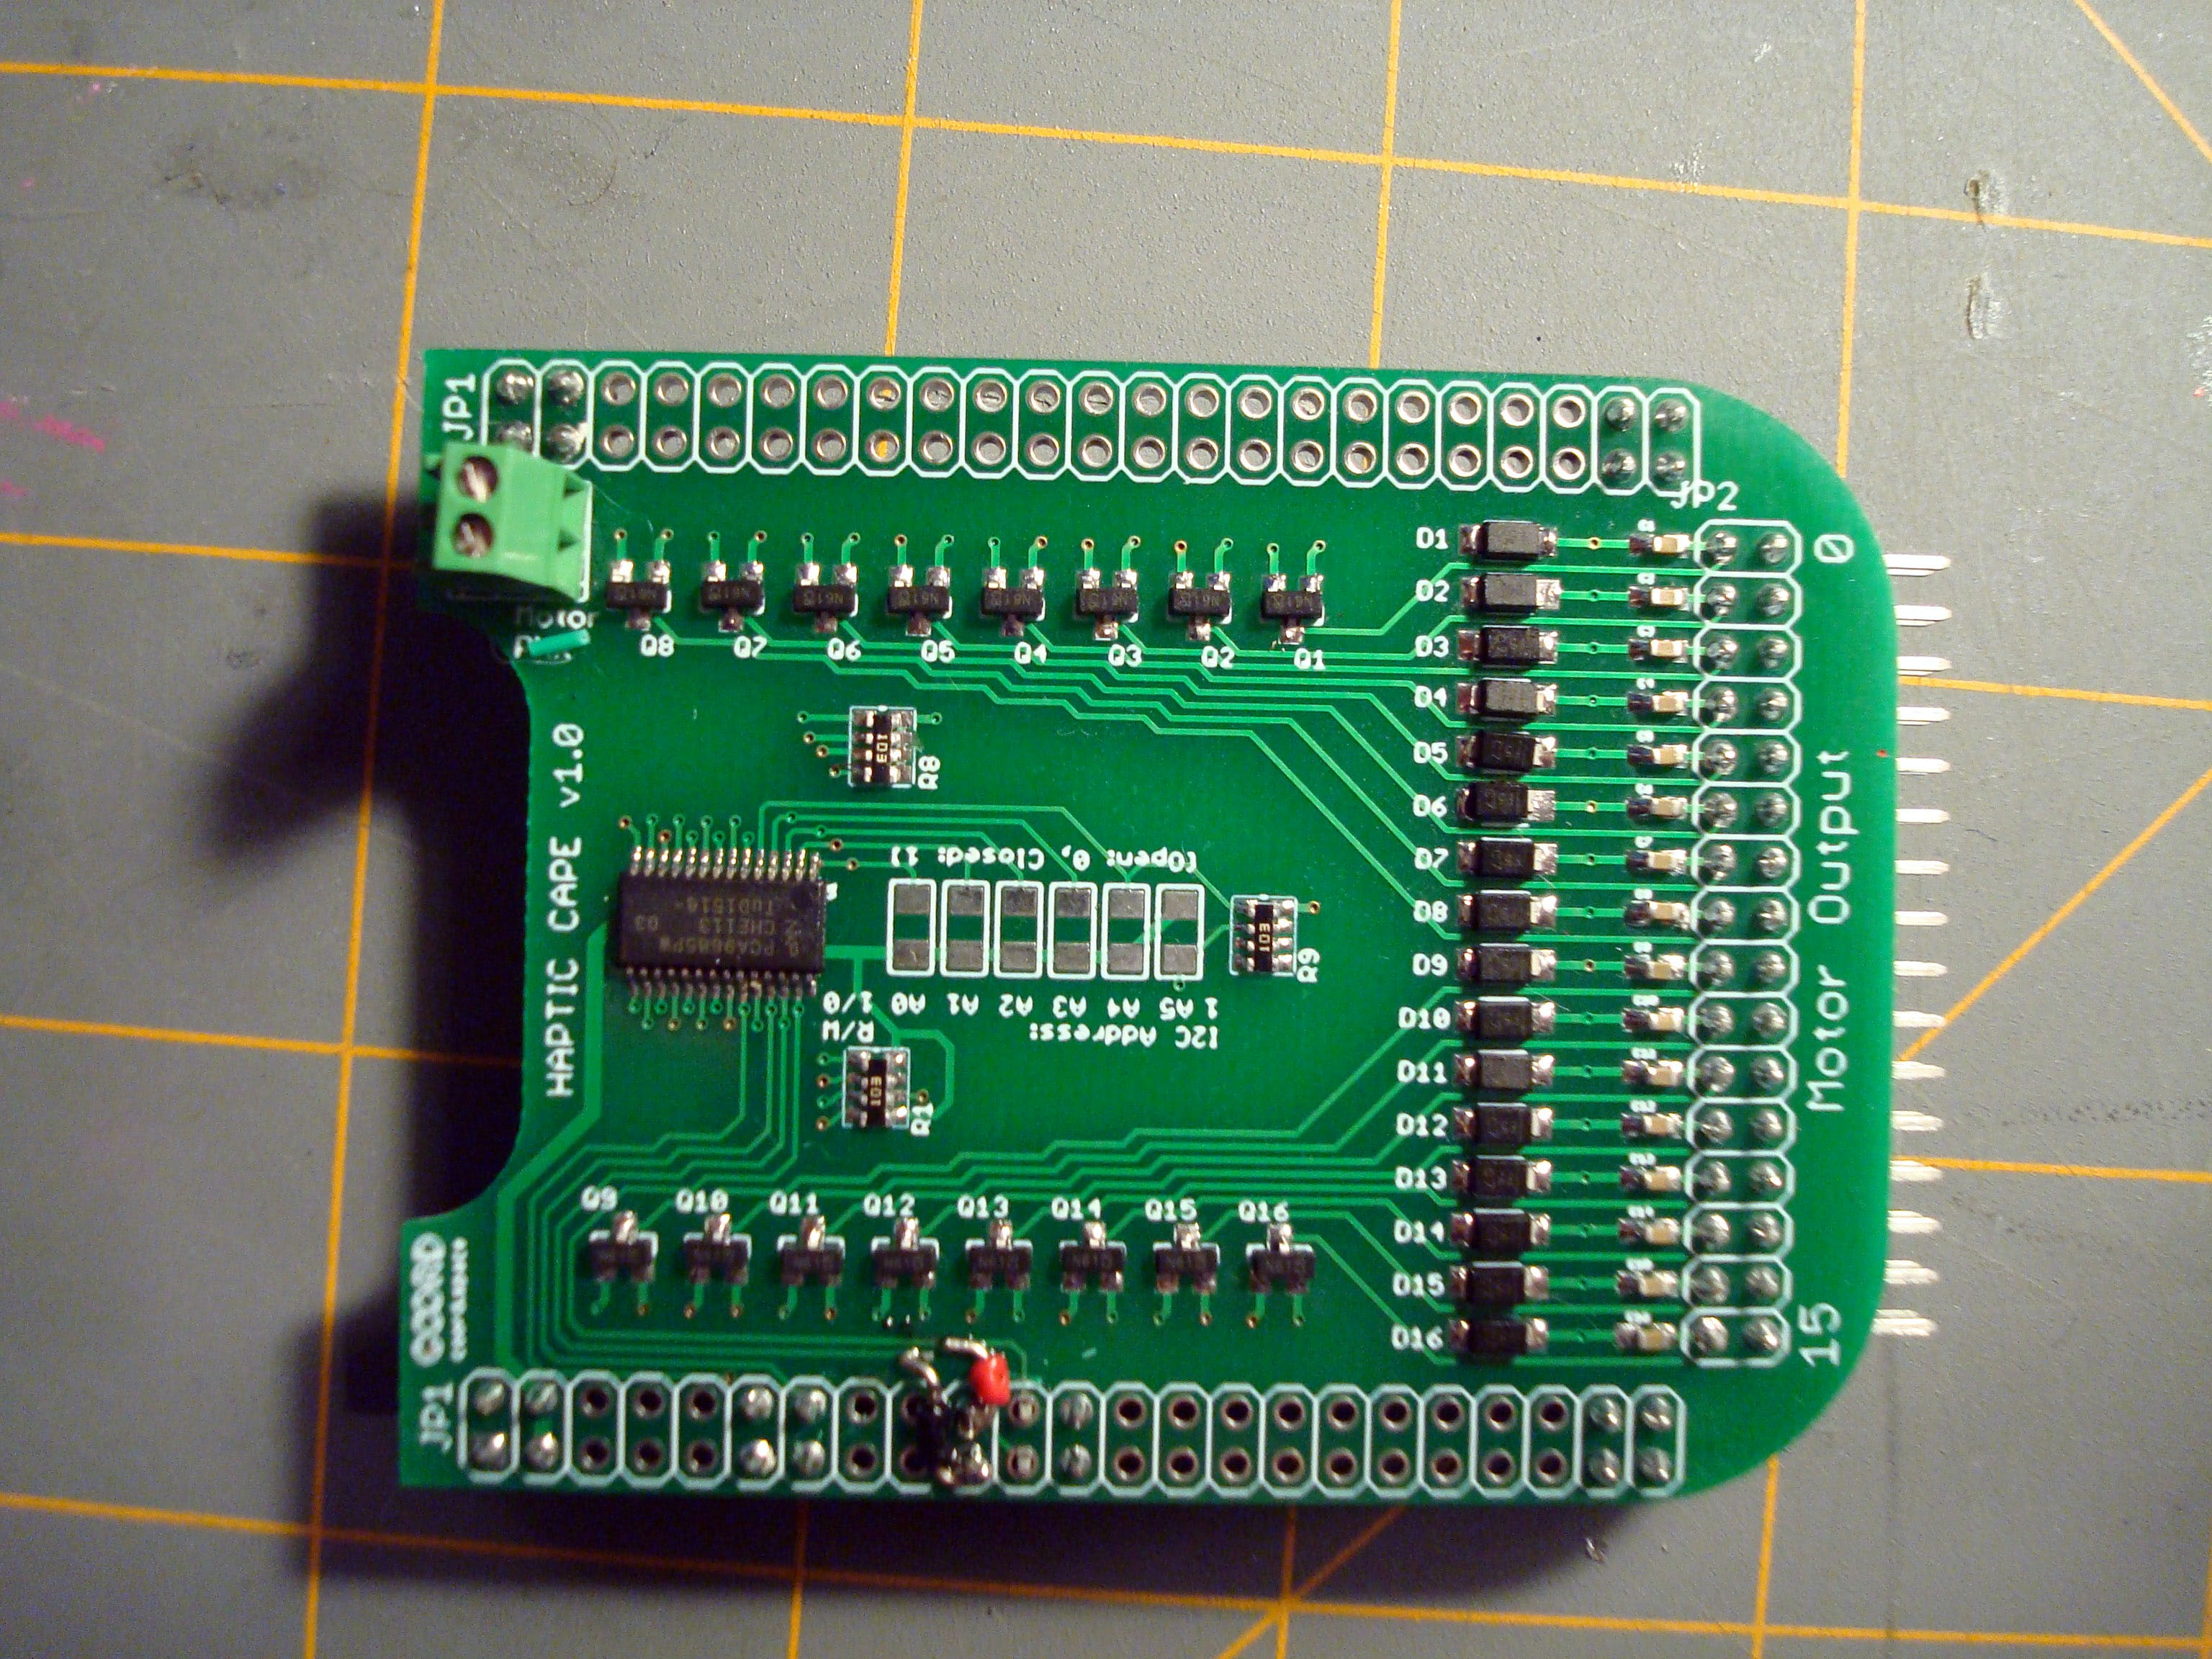 Bonus: Don't let anyone tell you that hardware is easy. For this early revision of the board, I made the mistake of putting the I2C lines on pins that (while shown as I2C2 pins in the docs) were not available for use. Since there wasn't enough time for another round of PCBs before the deadline, I had to do some quick rework. A little trace scraping and some tiny solid core wire later and it was working just fine. Luckily for you, the current version of the Haptic Cape has been updated with this fix along with a few smaller improvements!